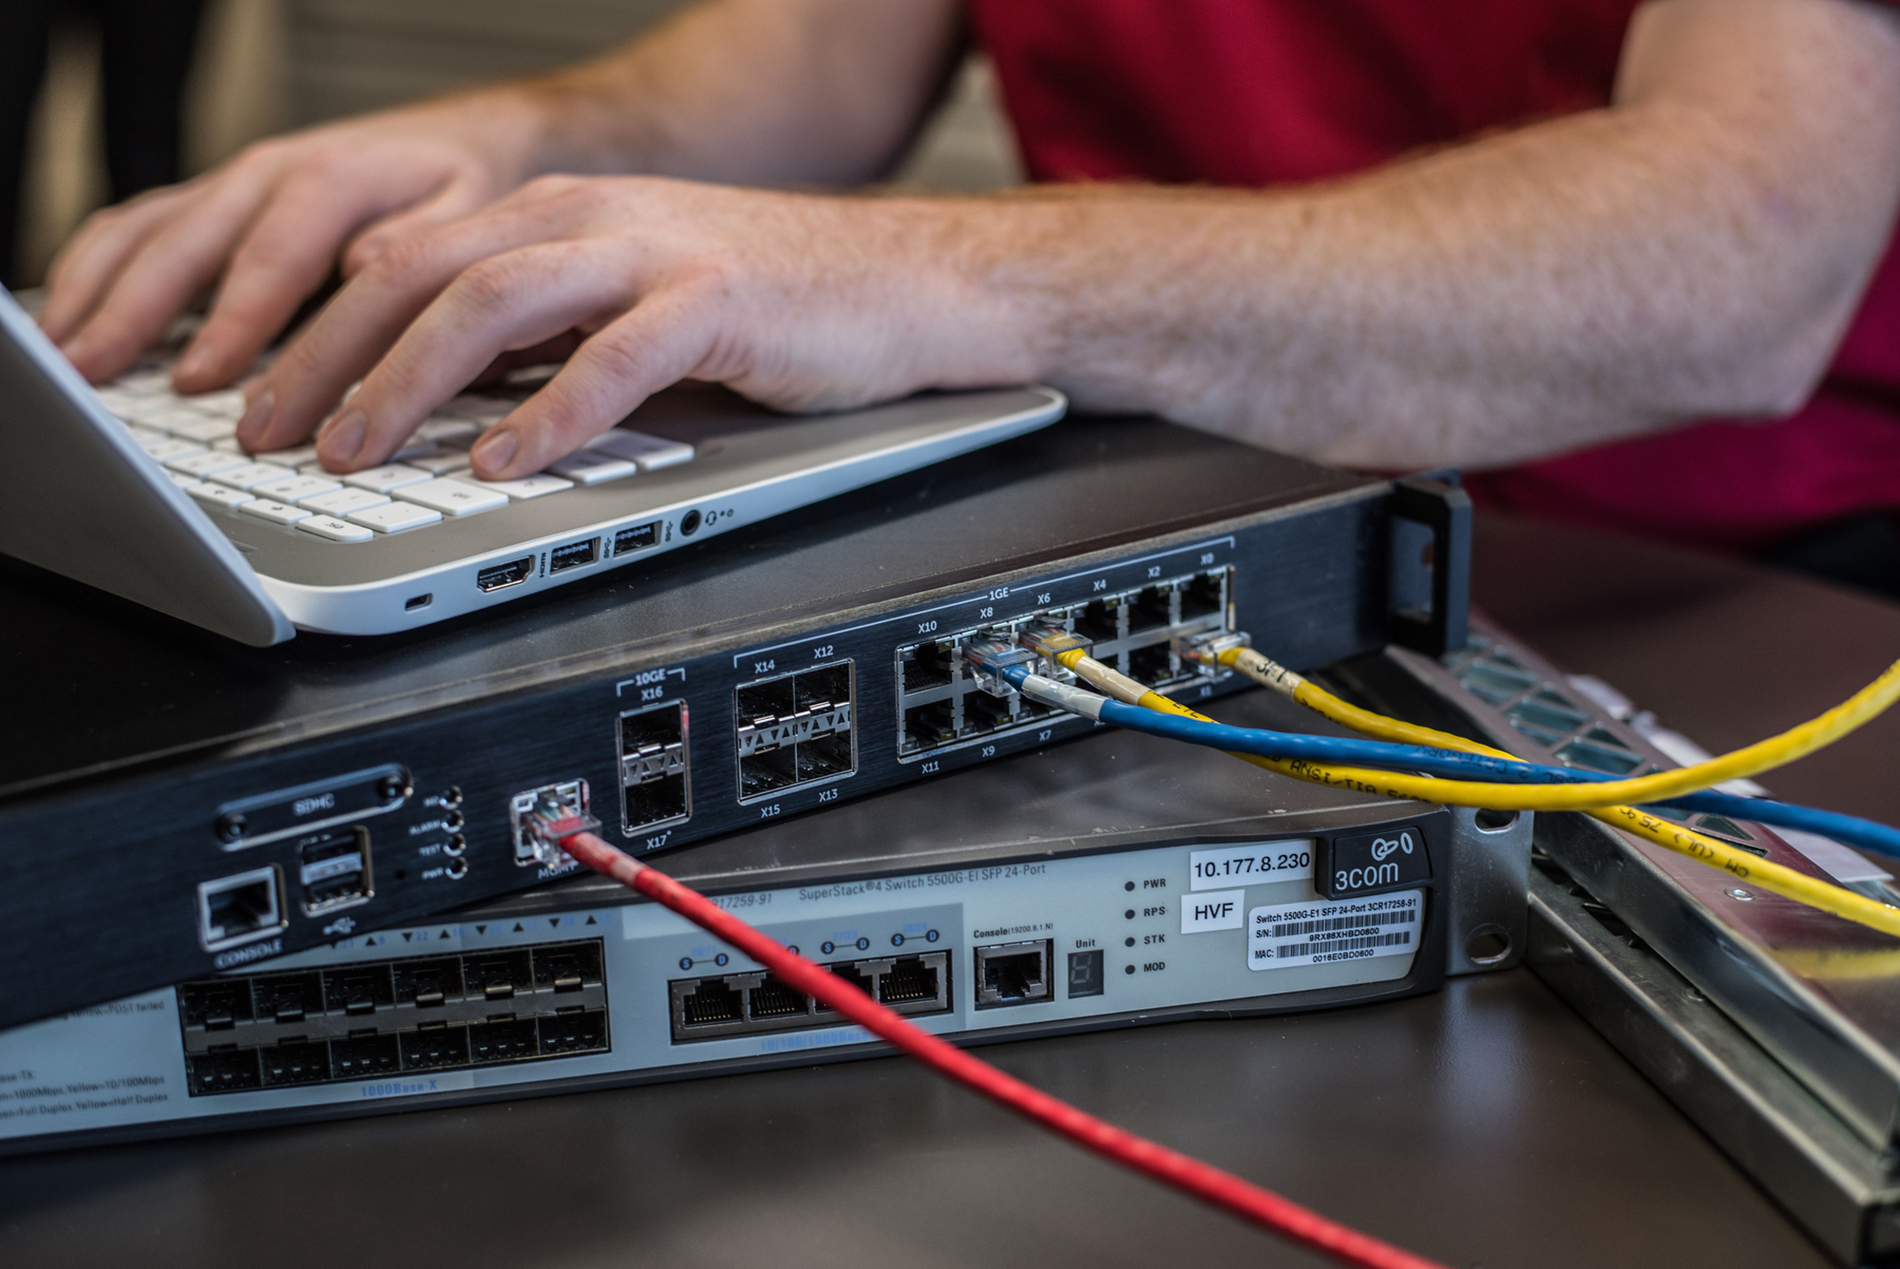 Best Practices For Computer Security Red Five It Grand Haven Mi Home Wiring With Constantly Evolving Technology Can Be Difficult To Keep Up All Of The Updates Your Needs Scans And Virus Protection